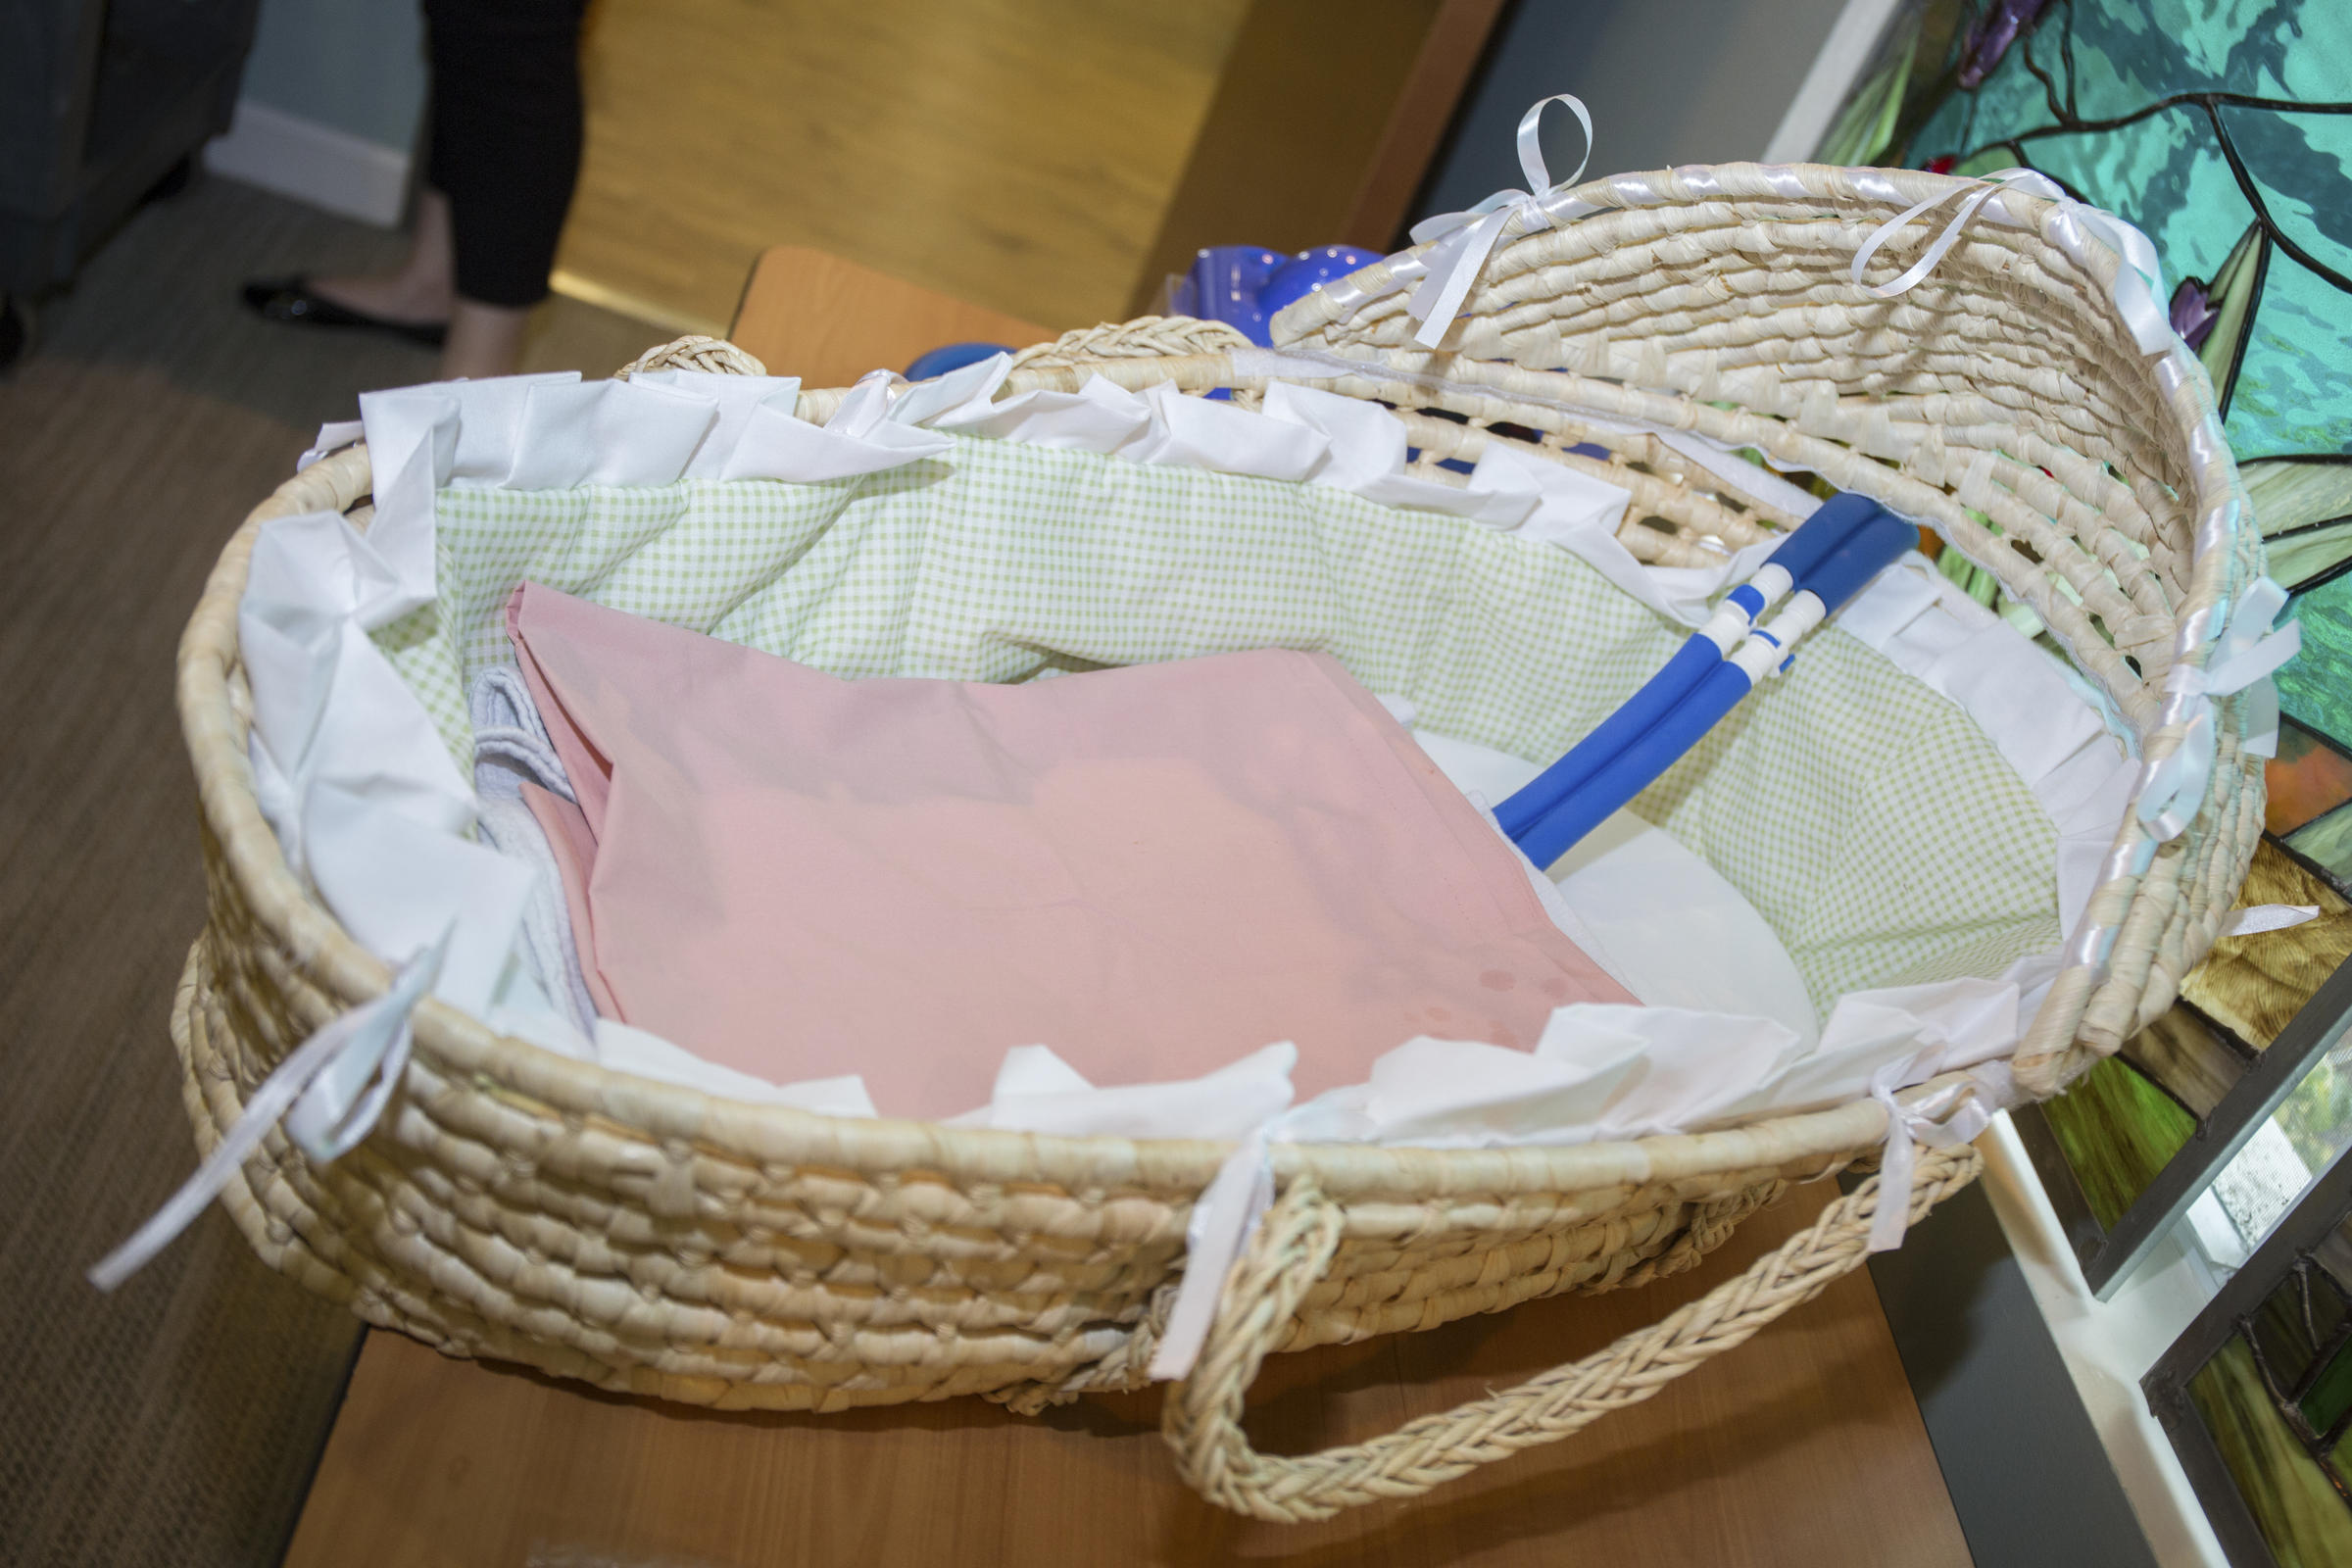 Baby bed next to bed - The Cooling Mat Can Be Placed In A Straw Bassinet That Looks Like A Moses Basket Or It Can Be Placed On Mom S Hospital Bed Next To Her Side